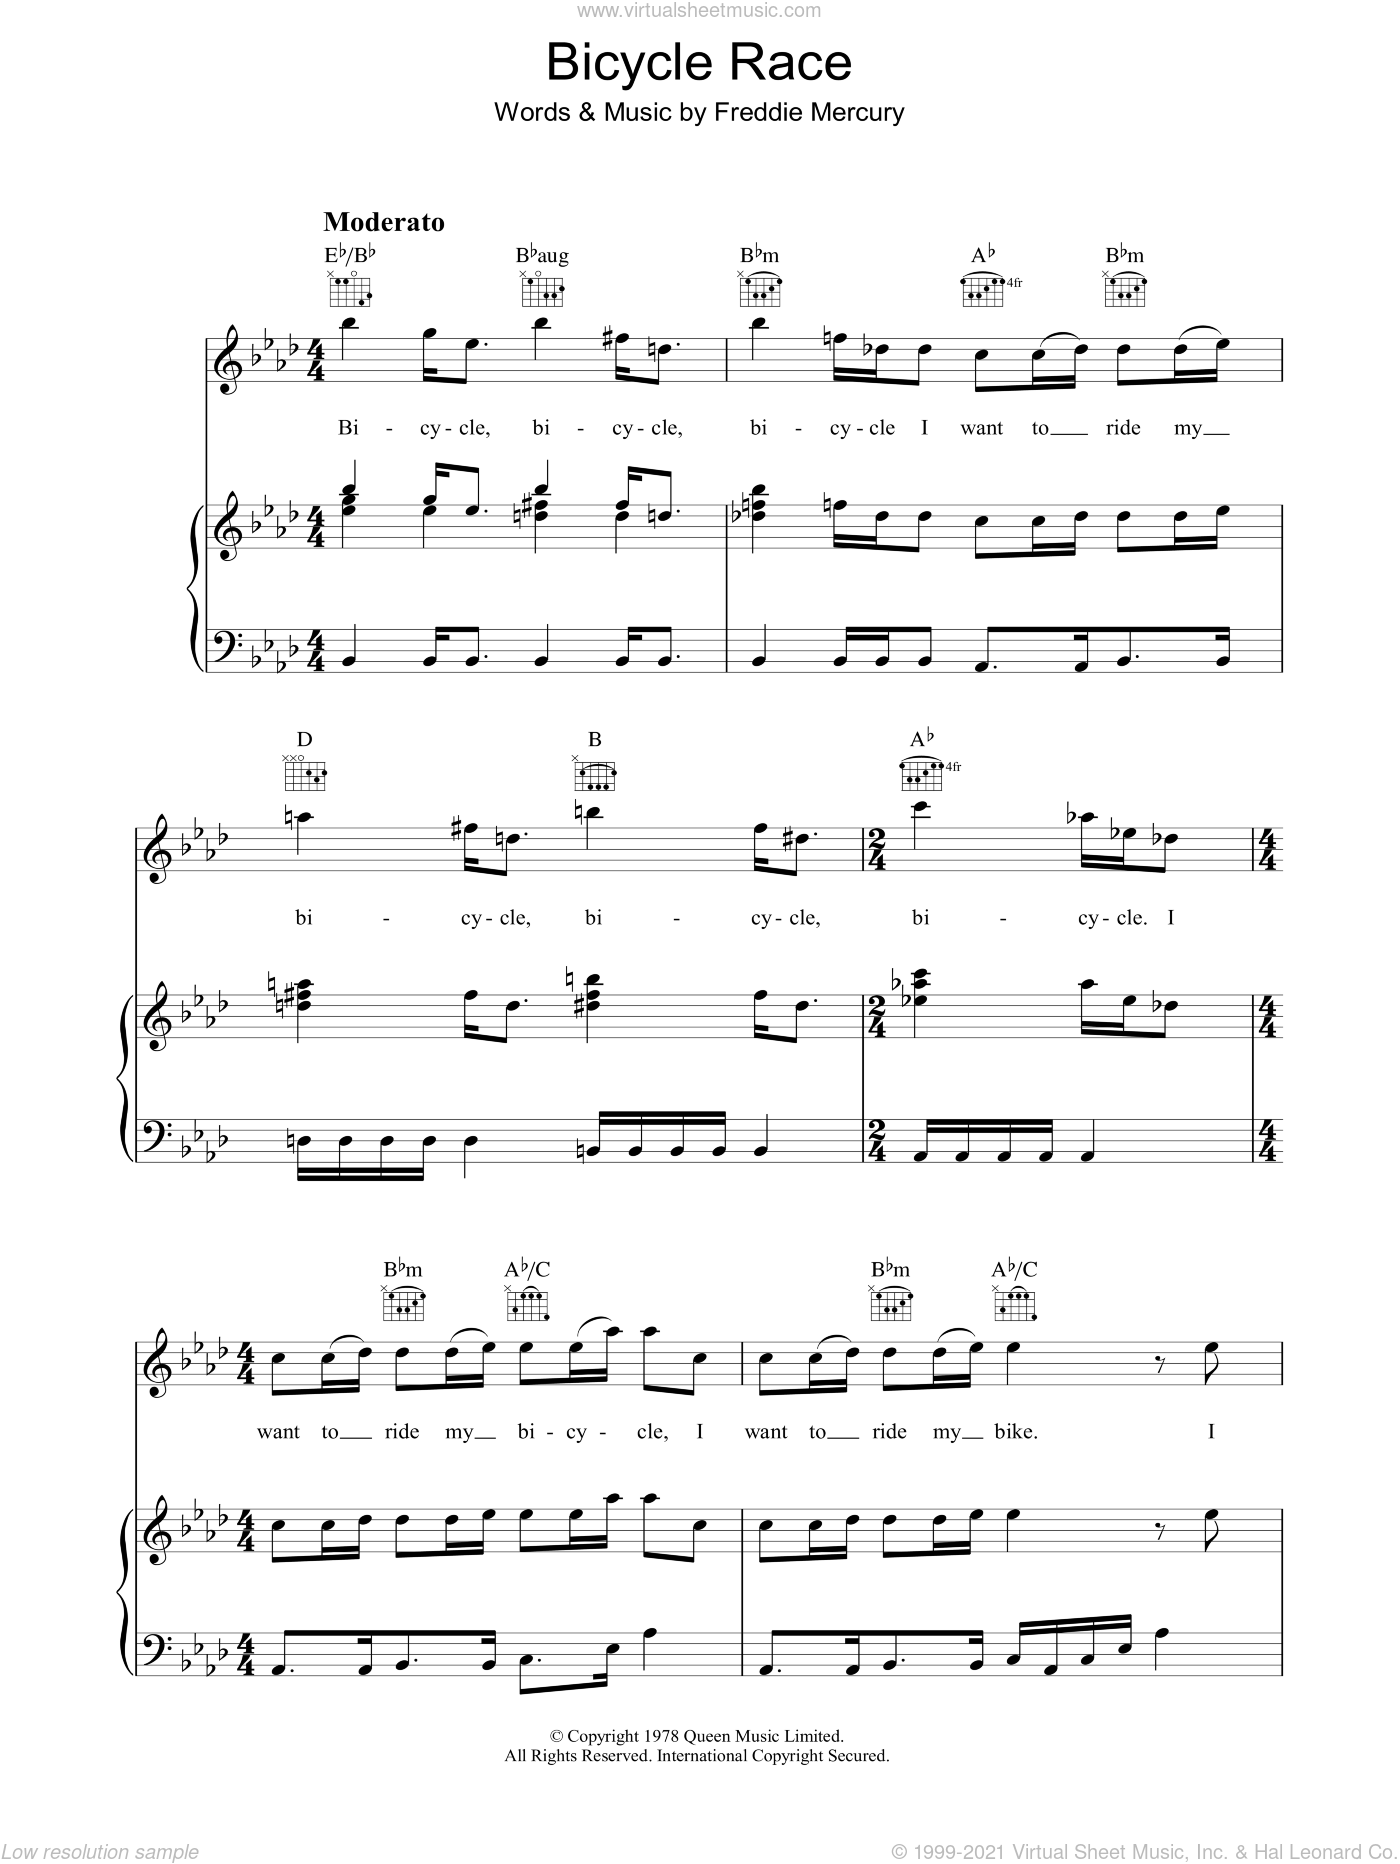 Bicycle Race sheet music for voice, piano or guitar by Queen and Freddie Mercury, intermediate skill level